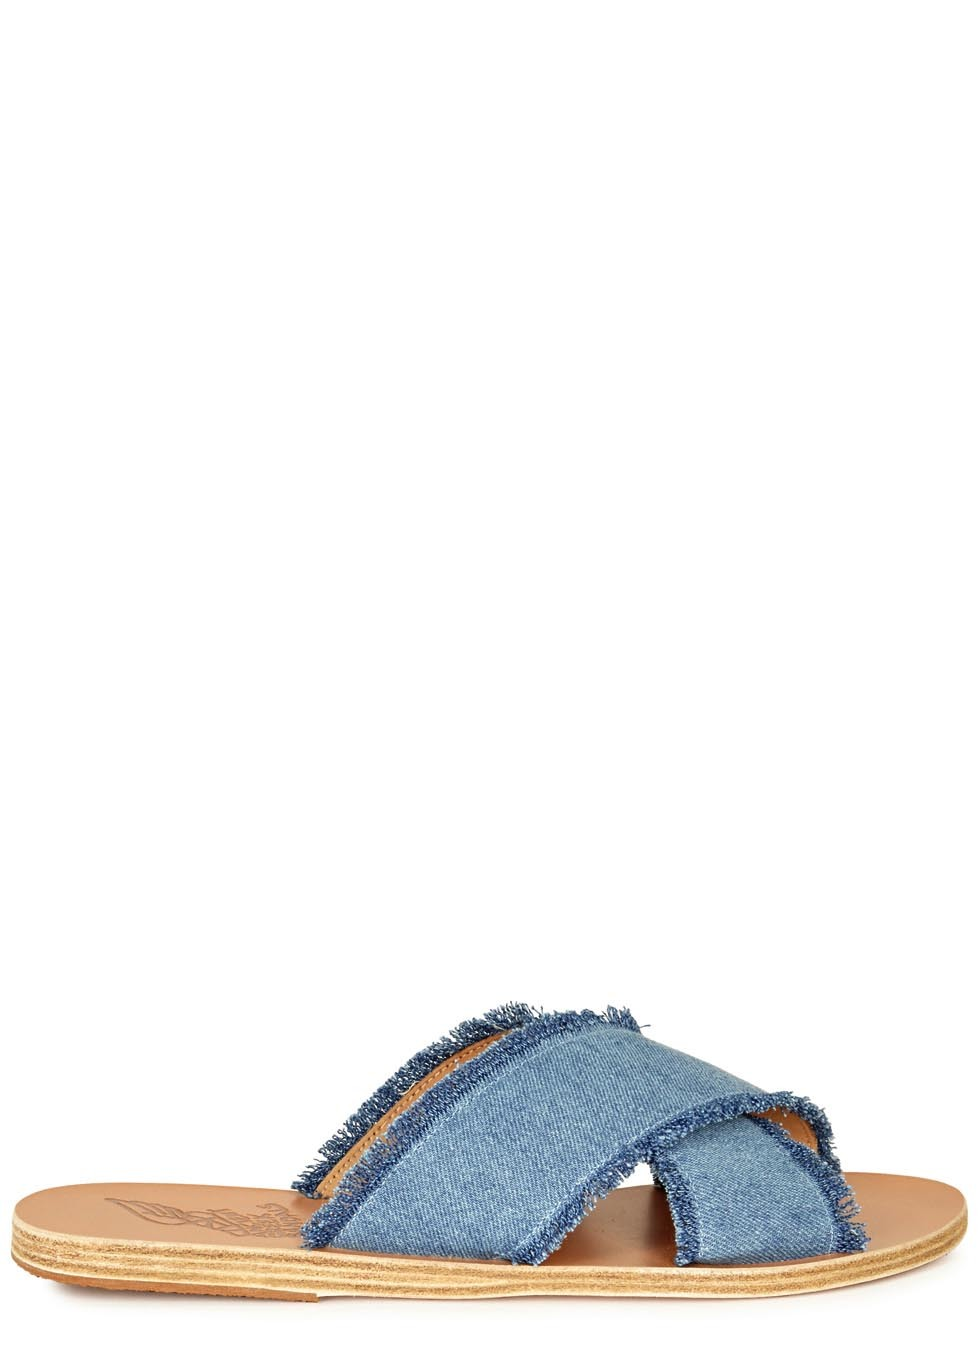 Thais Blue Frayed Denim Sliders - predominant colour: denim; occasions: casual, holiday; material: fabric; heel height: flat; heel: wedge; toe: open toe/peeptoe; style: slides; finish: plain; pattern: plain; season: s/s 2016; wardrobe: highlight